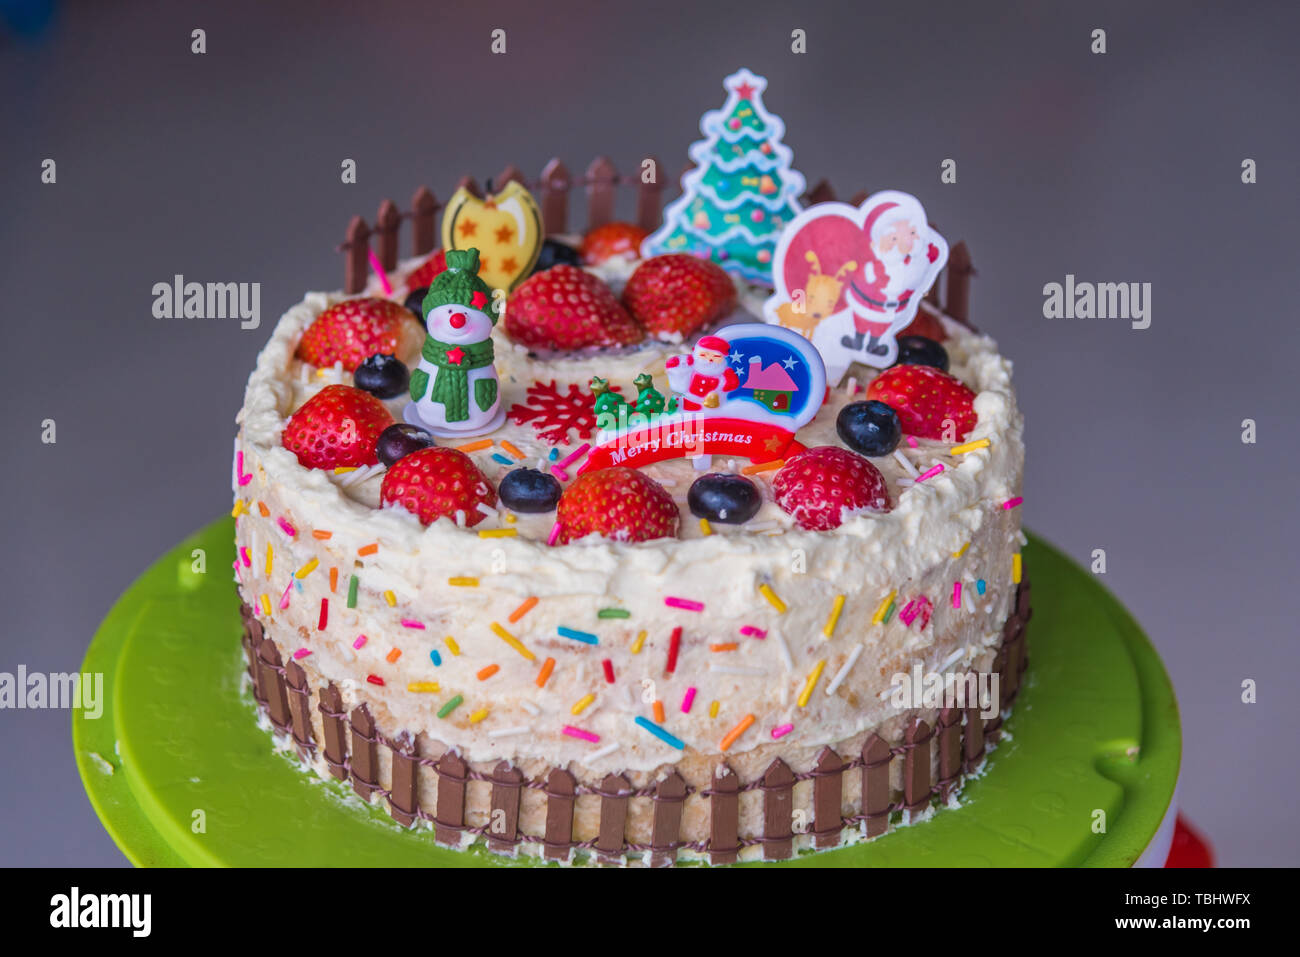 Magnificent Homemade Birthday Cake Stock Photo 248099598 Alamy Funny Birthday Cards Online Elaedamsfinfo